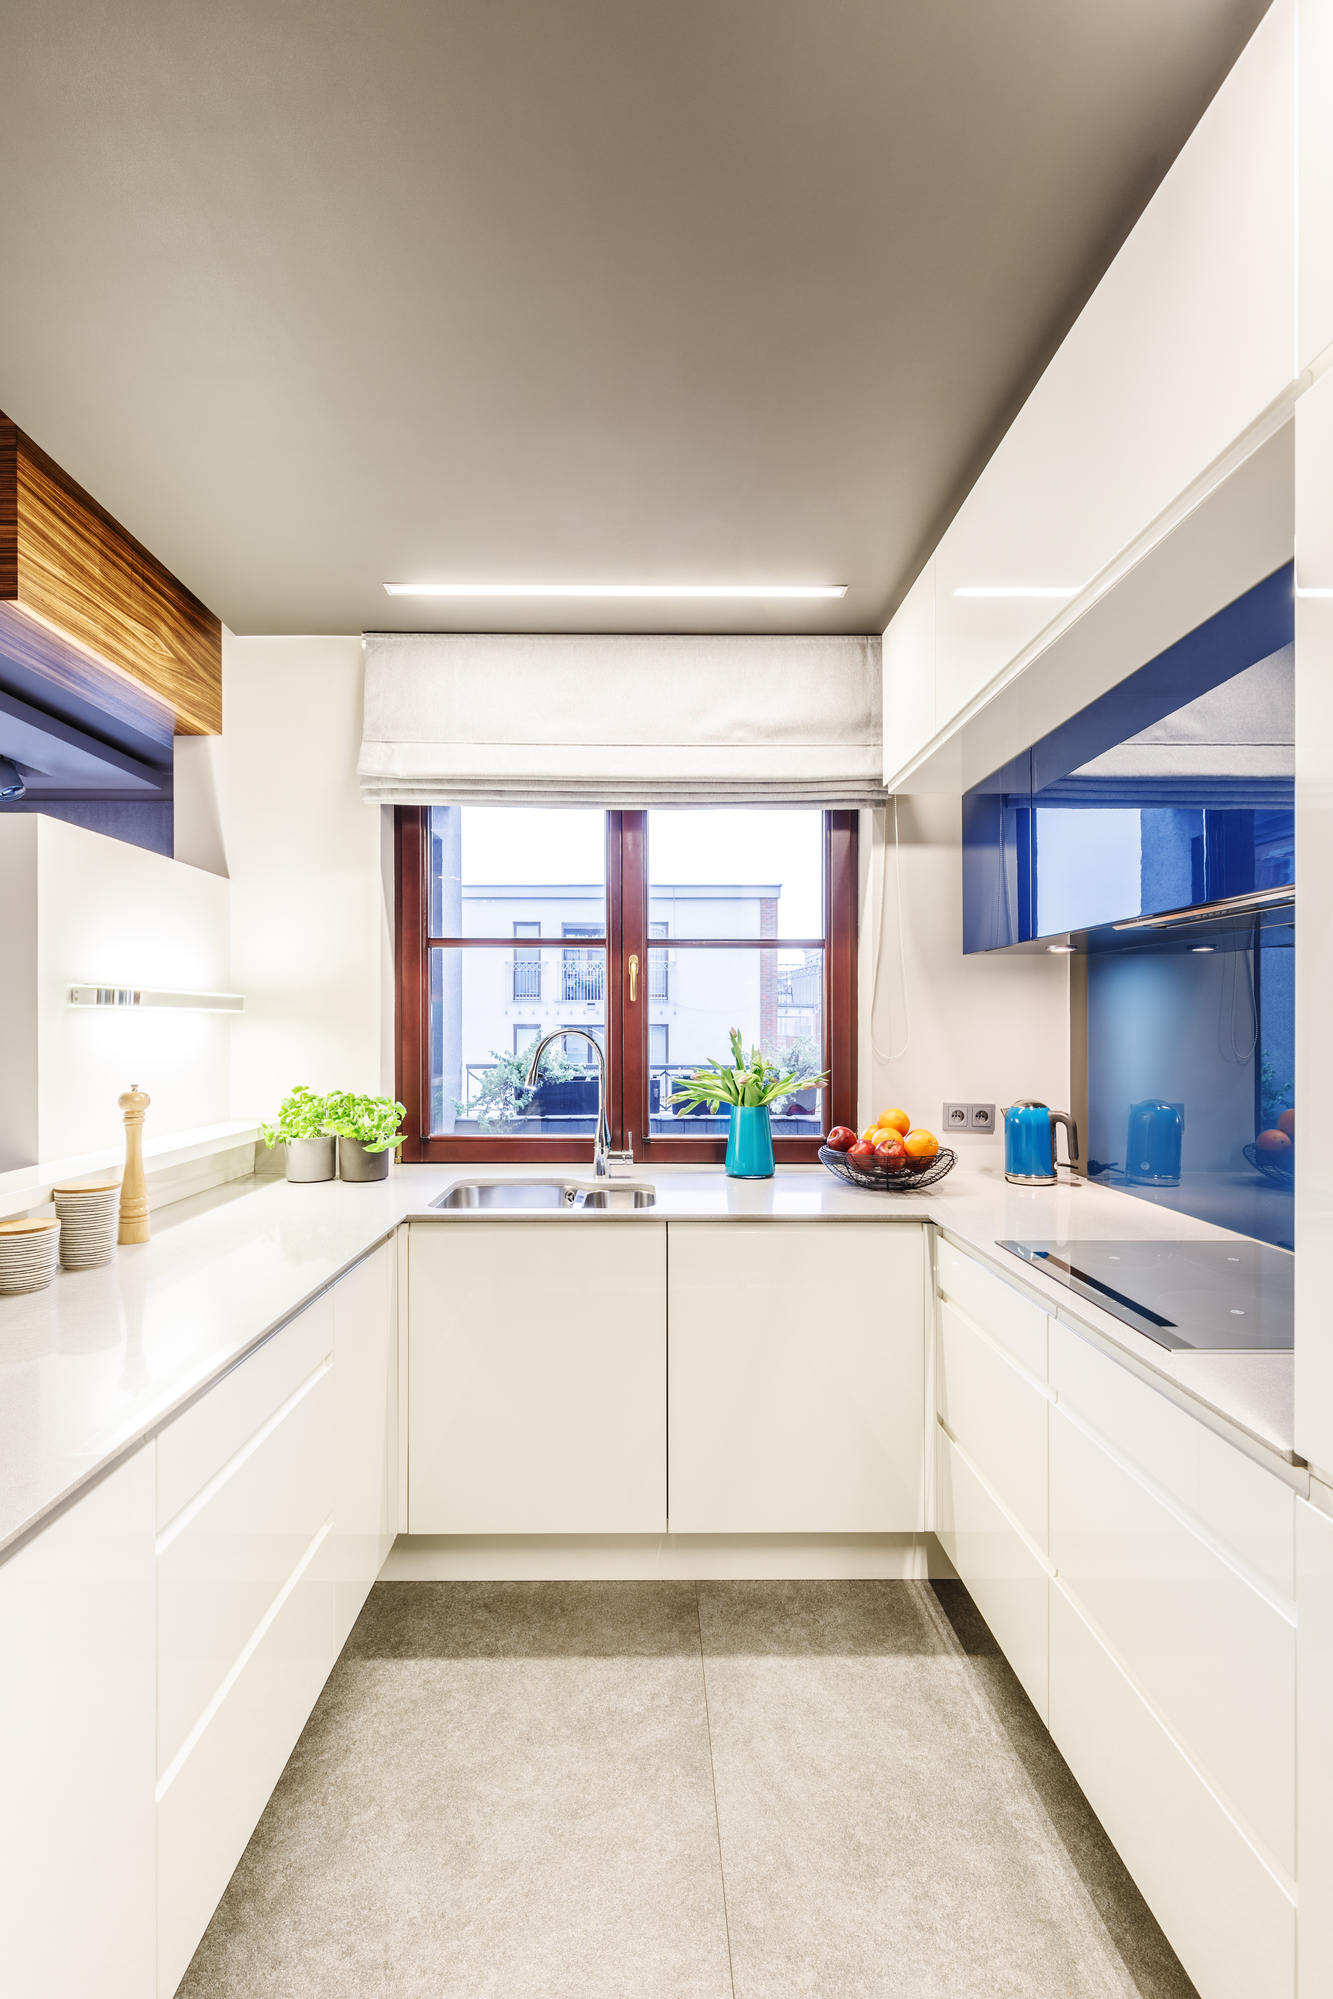 Top 3 Small Kitchen Remodeling Ideas Tremain Corporation